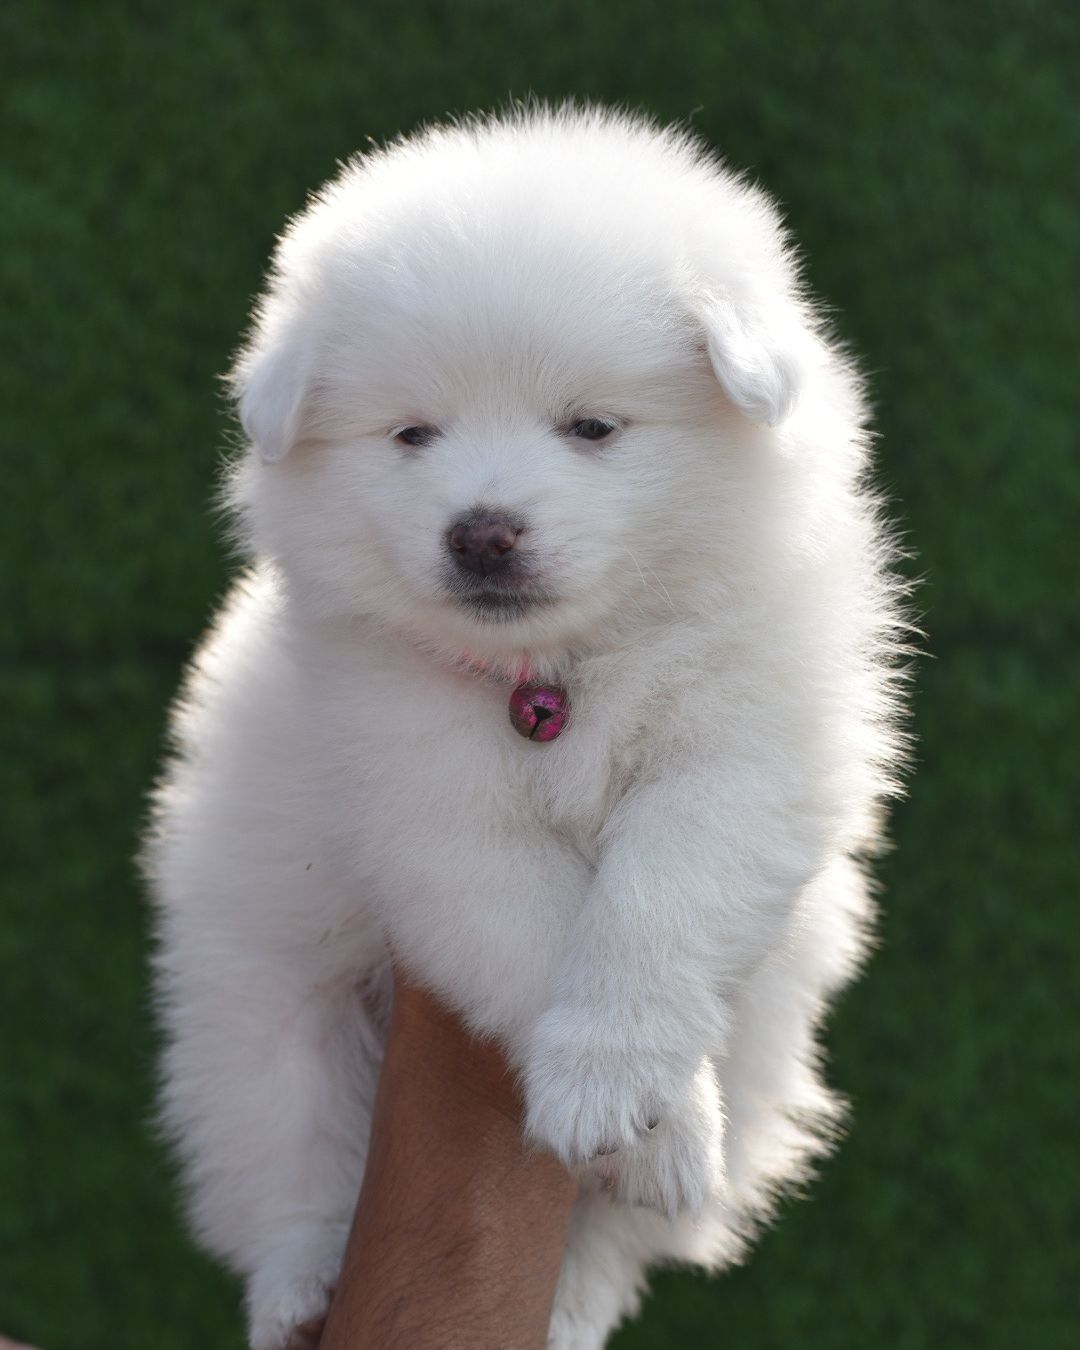 Pom Puppies For Sale Delhi In 2020 Puppies Pets Cute Animals